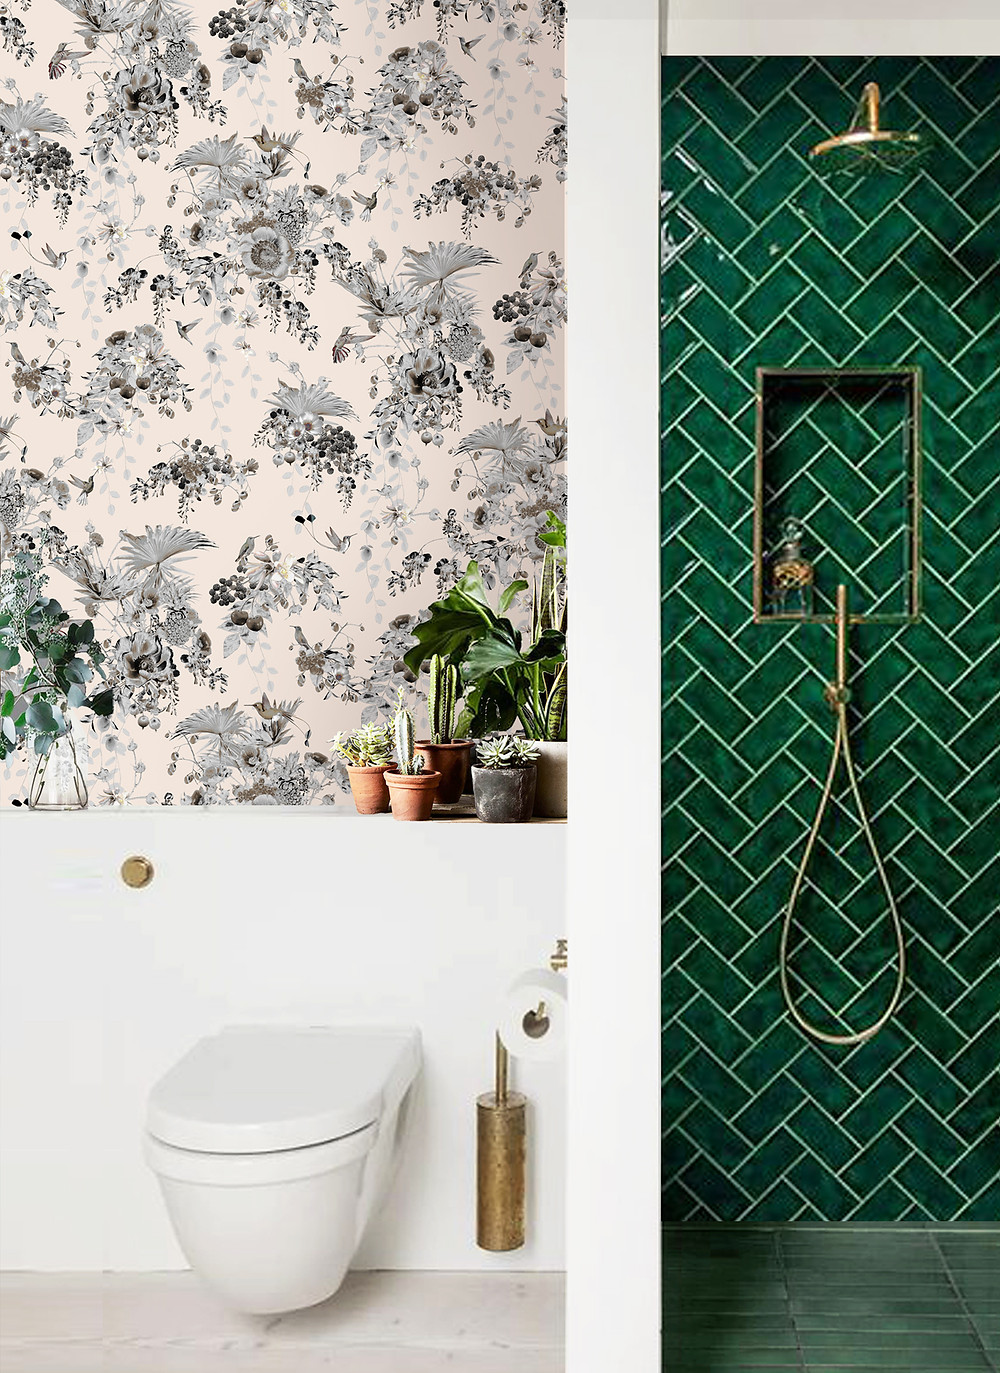 Floral Wallpaper with hummingbirds in bathroom by Good and Craft